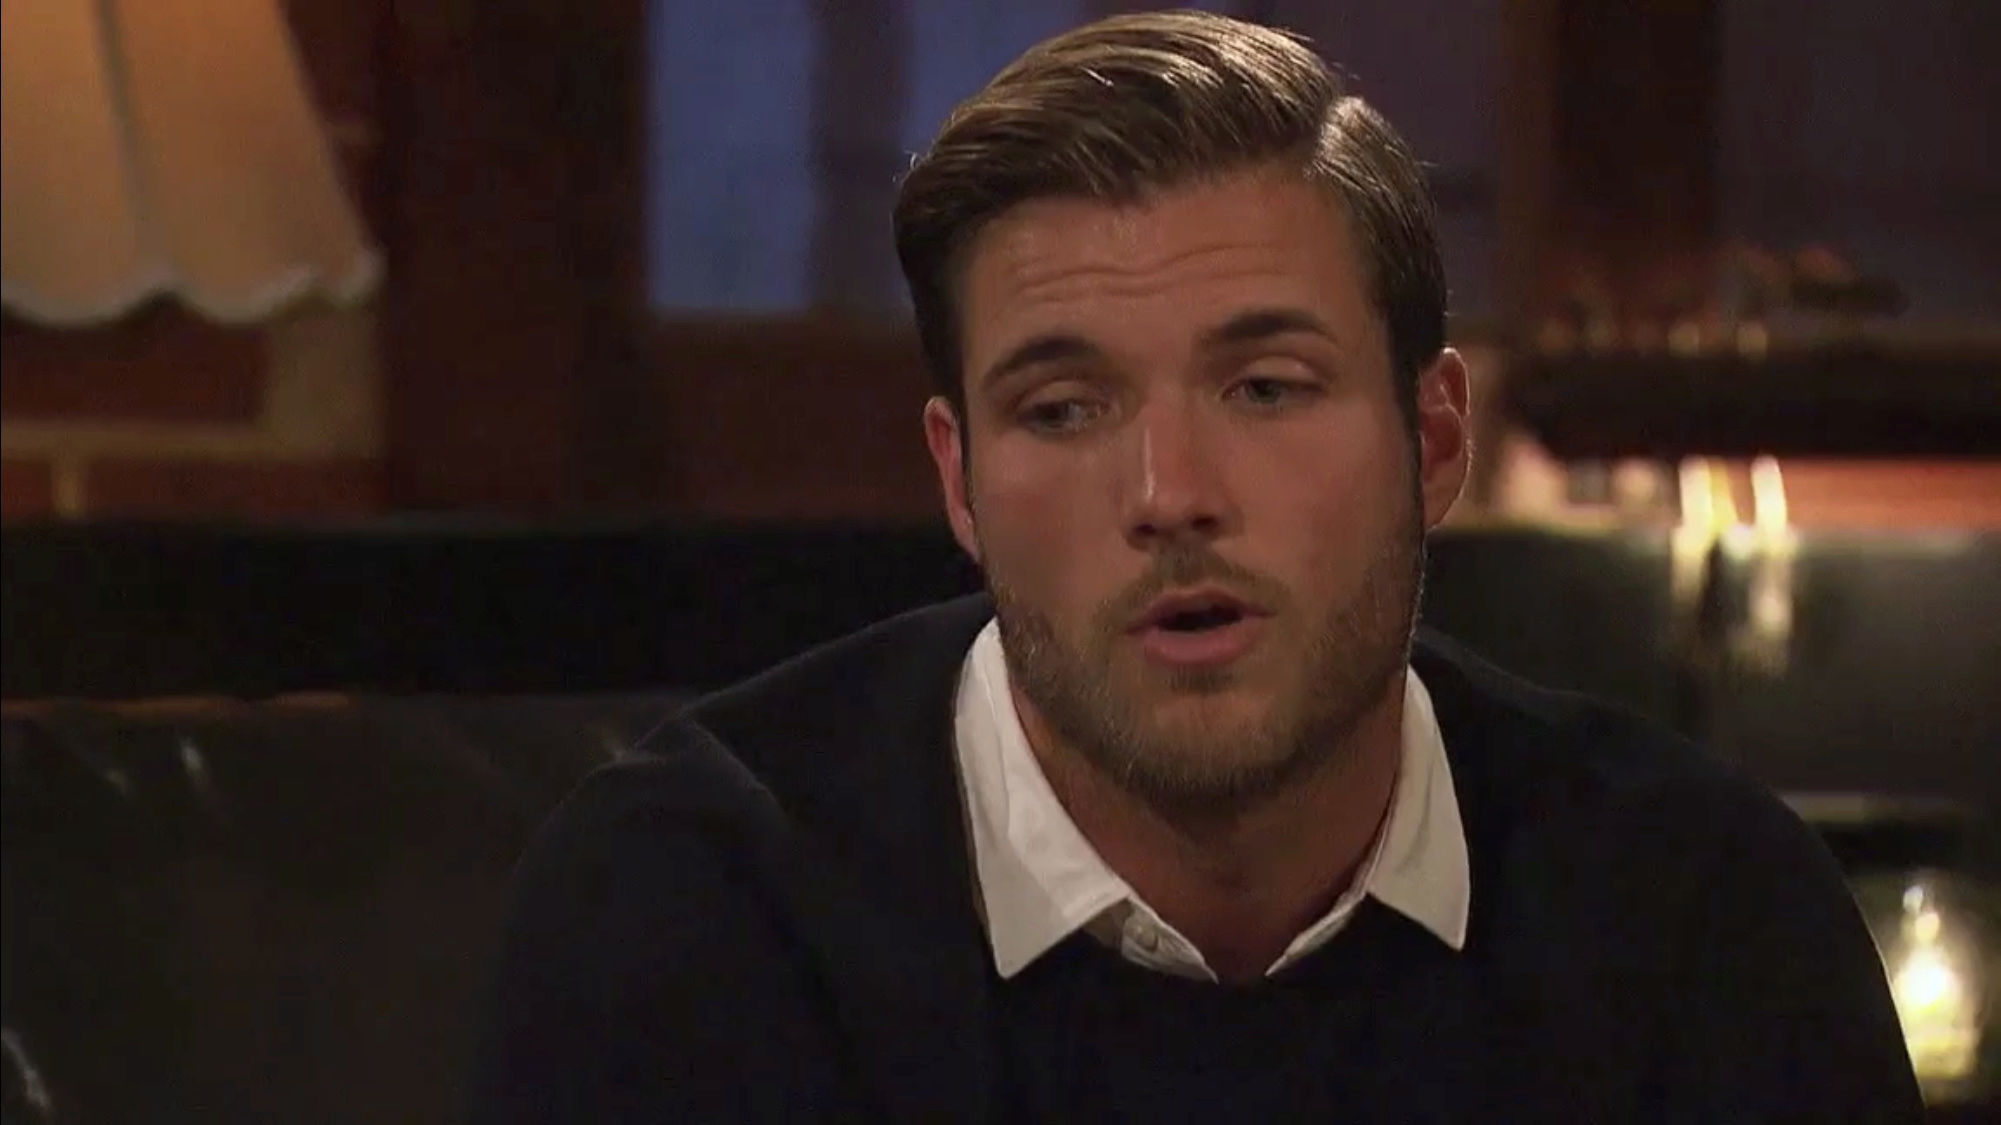 Bachelorette 14 - Becca Kufrin - ScreenCaps - NO Discussion - *Sleuthing Spoilers* D10b8210